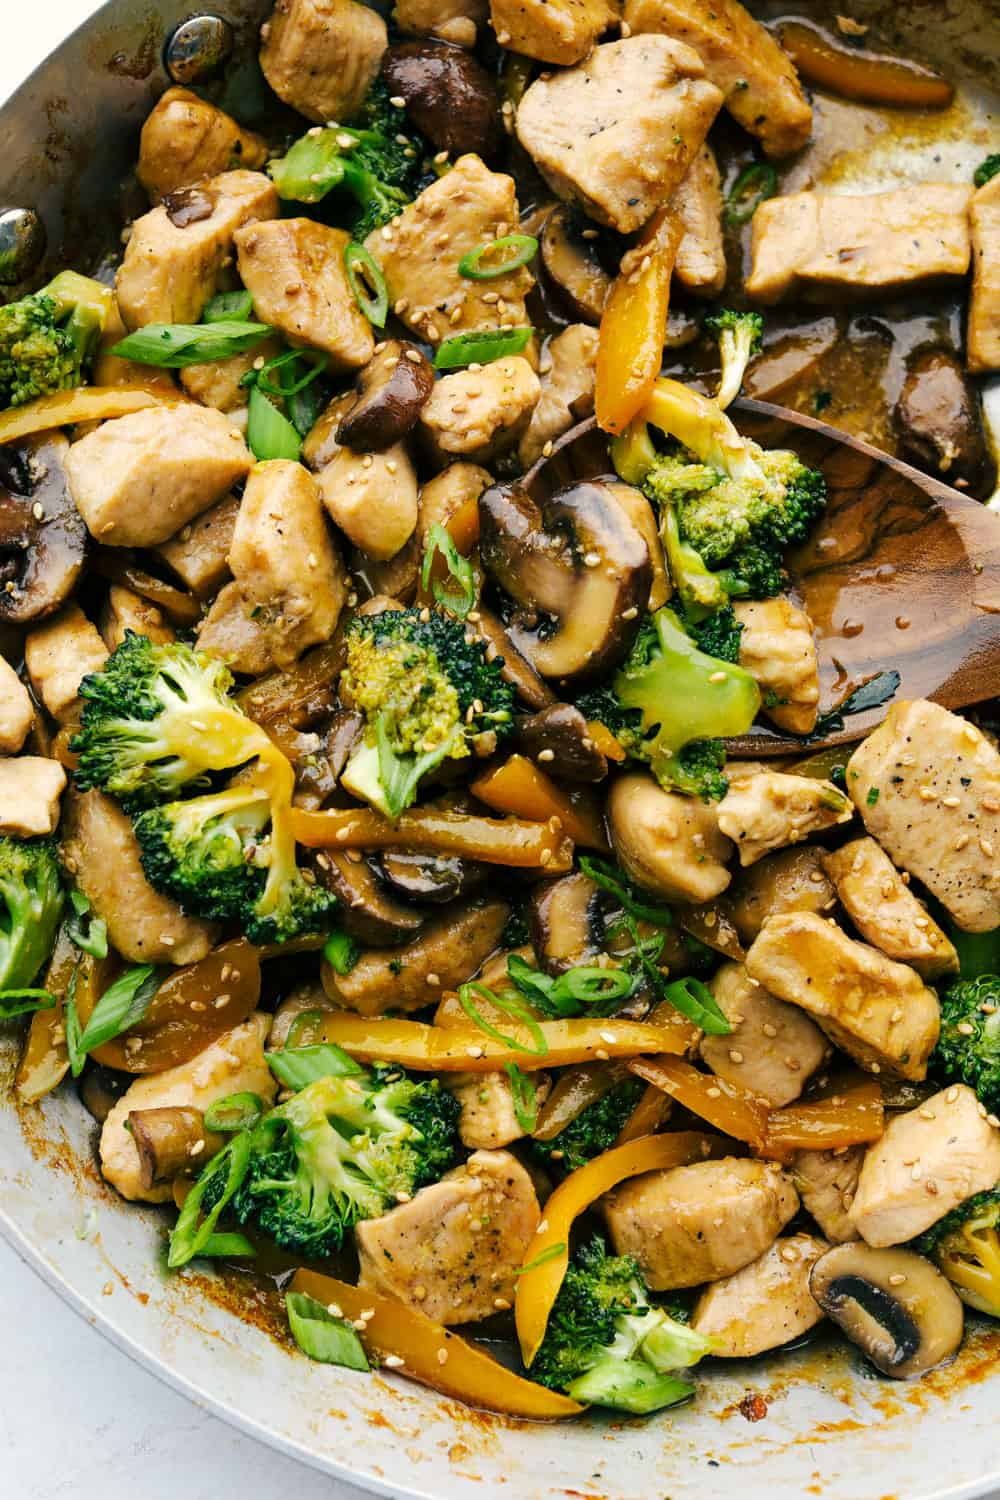 Stirring the chicken, broccoli and mushrooms all together.